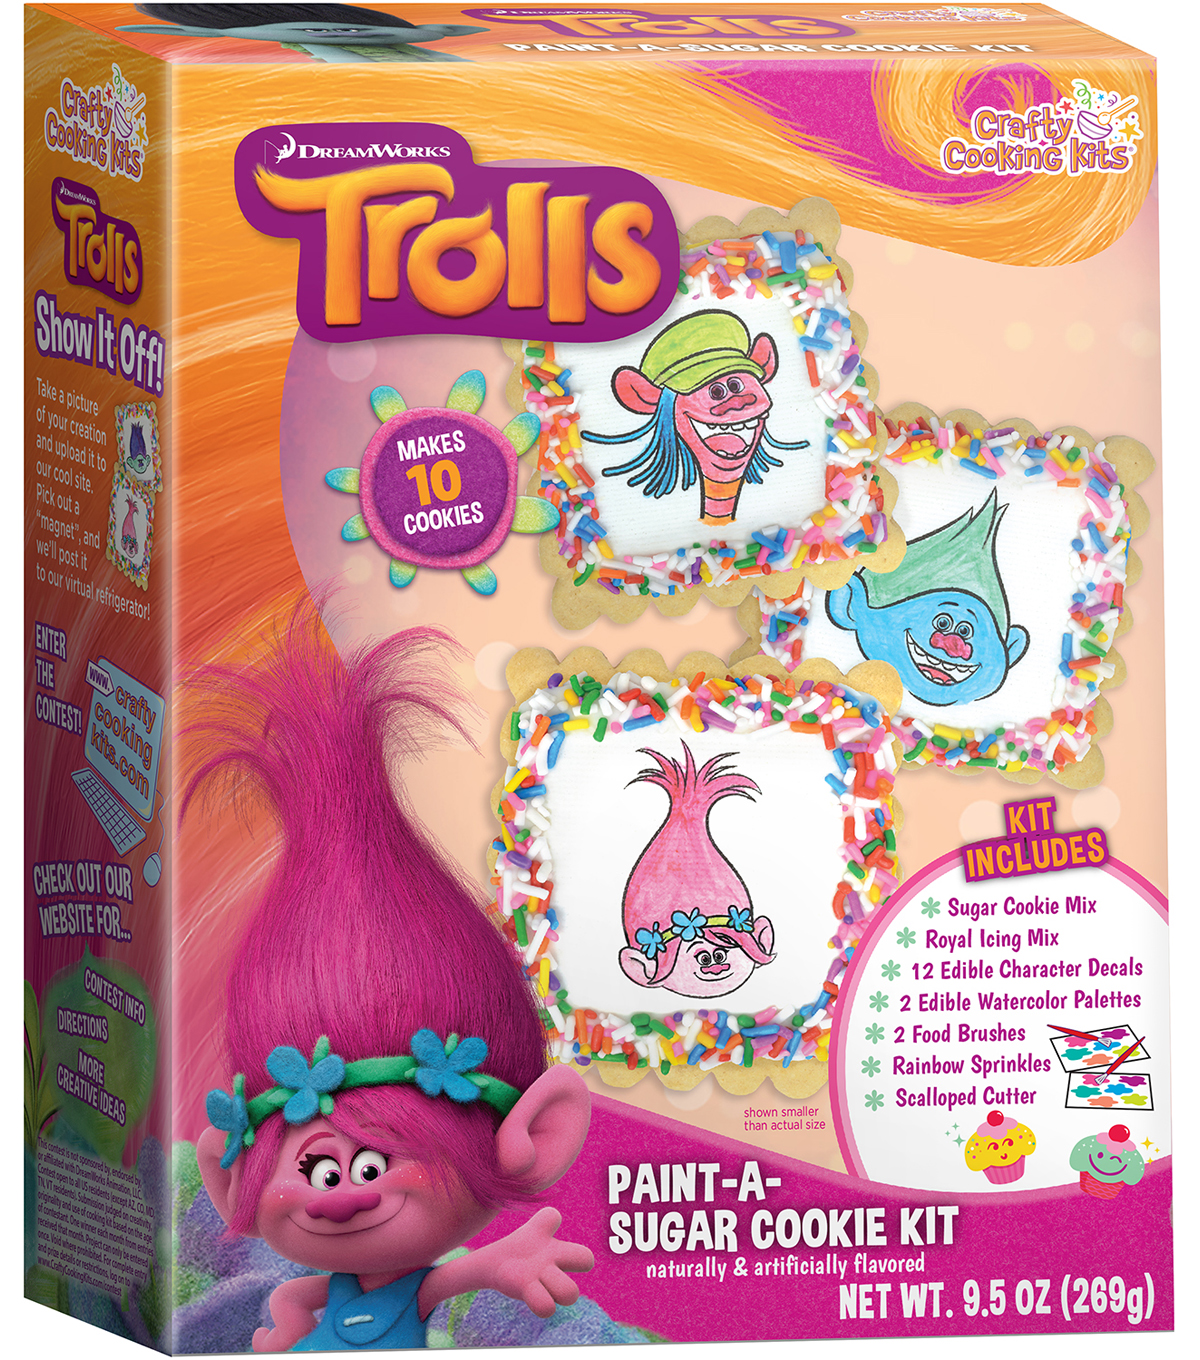 Dreamworks Trolls Paint-A-Sugar Cookie Kit